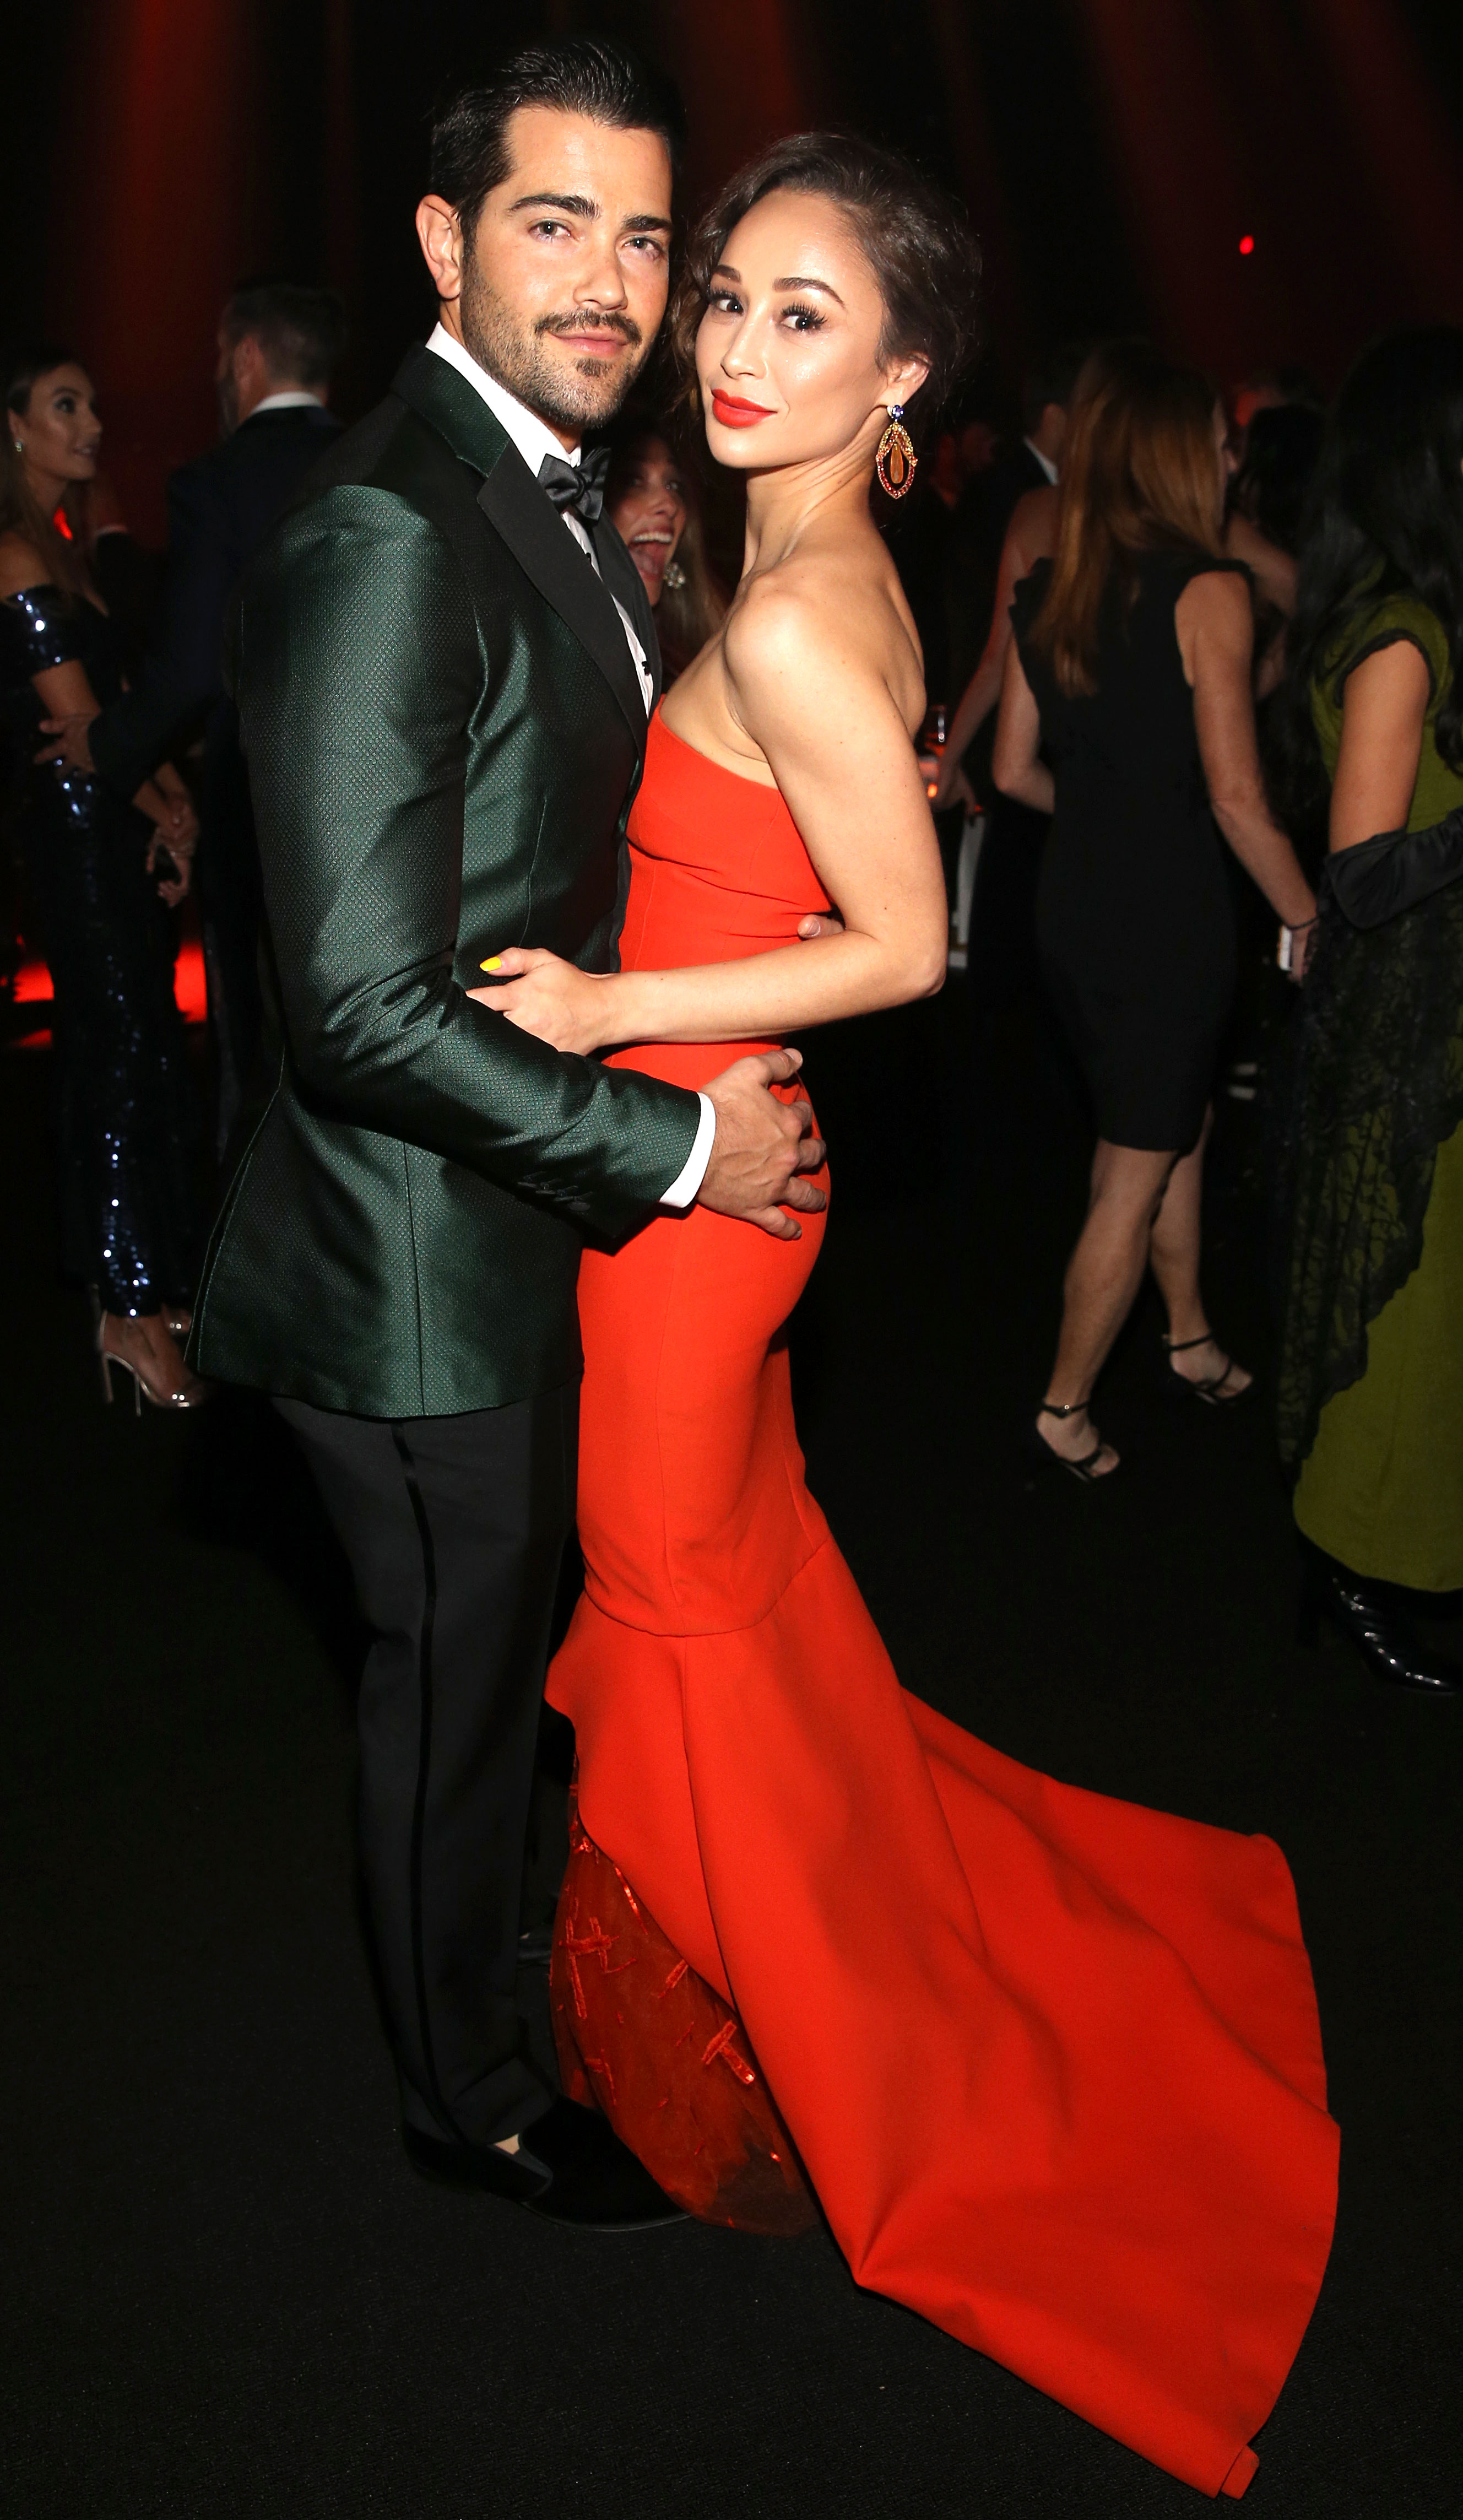 Cara Santana: I'm 'Nowhere' in My Wedding Planning With Fiance Jesse Metcalfe - Jesse Metcalfe and Cara Santana attend The Art Of Elysium's 11th Annual Celebration with John Legend at Barker Hangar on January 6, 2018 in Santa Monica, California.